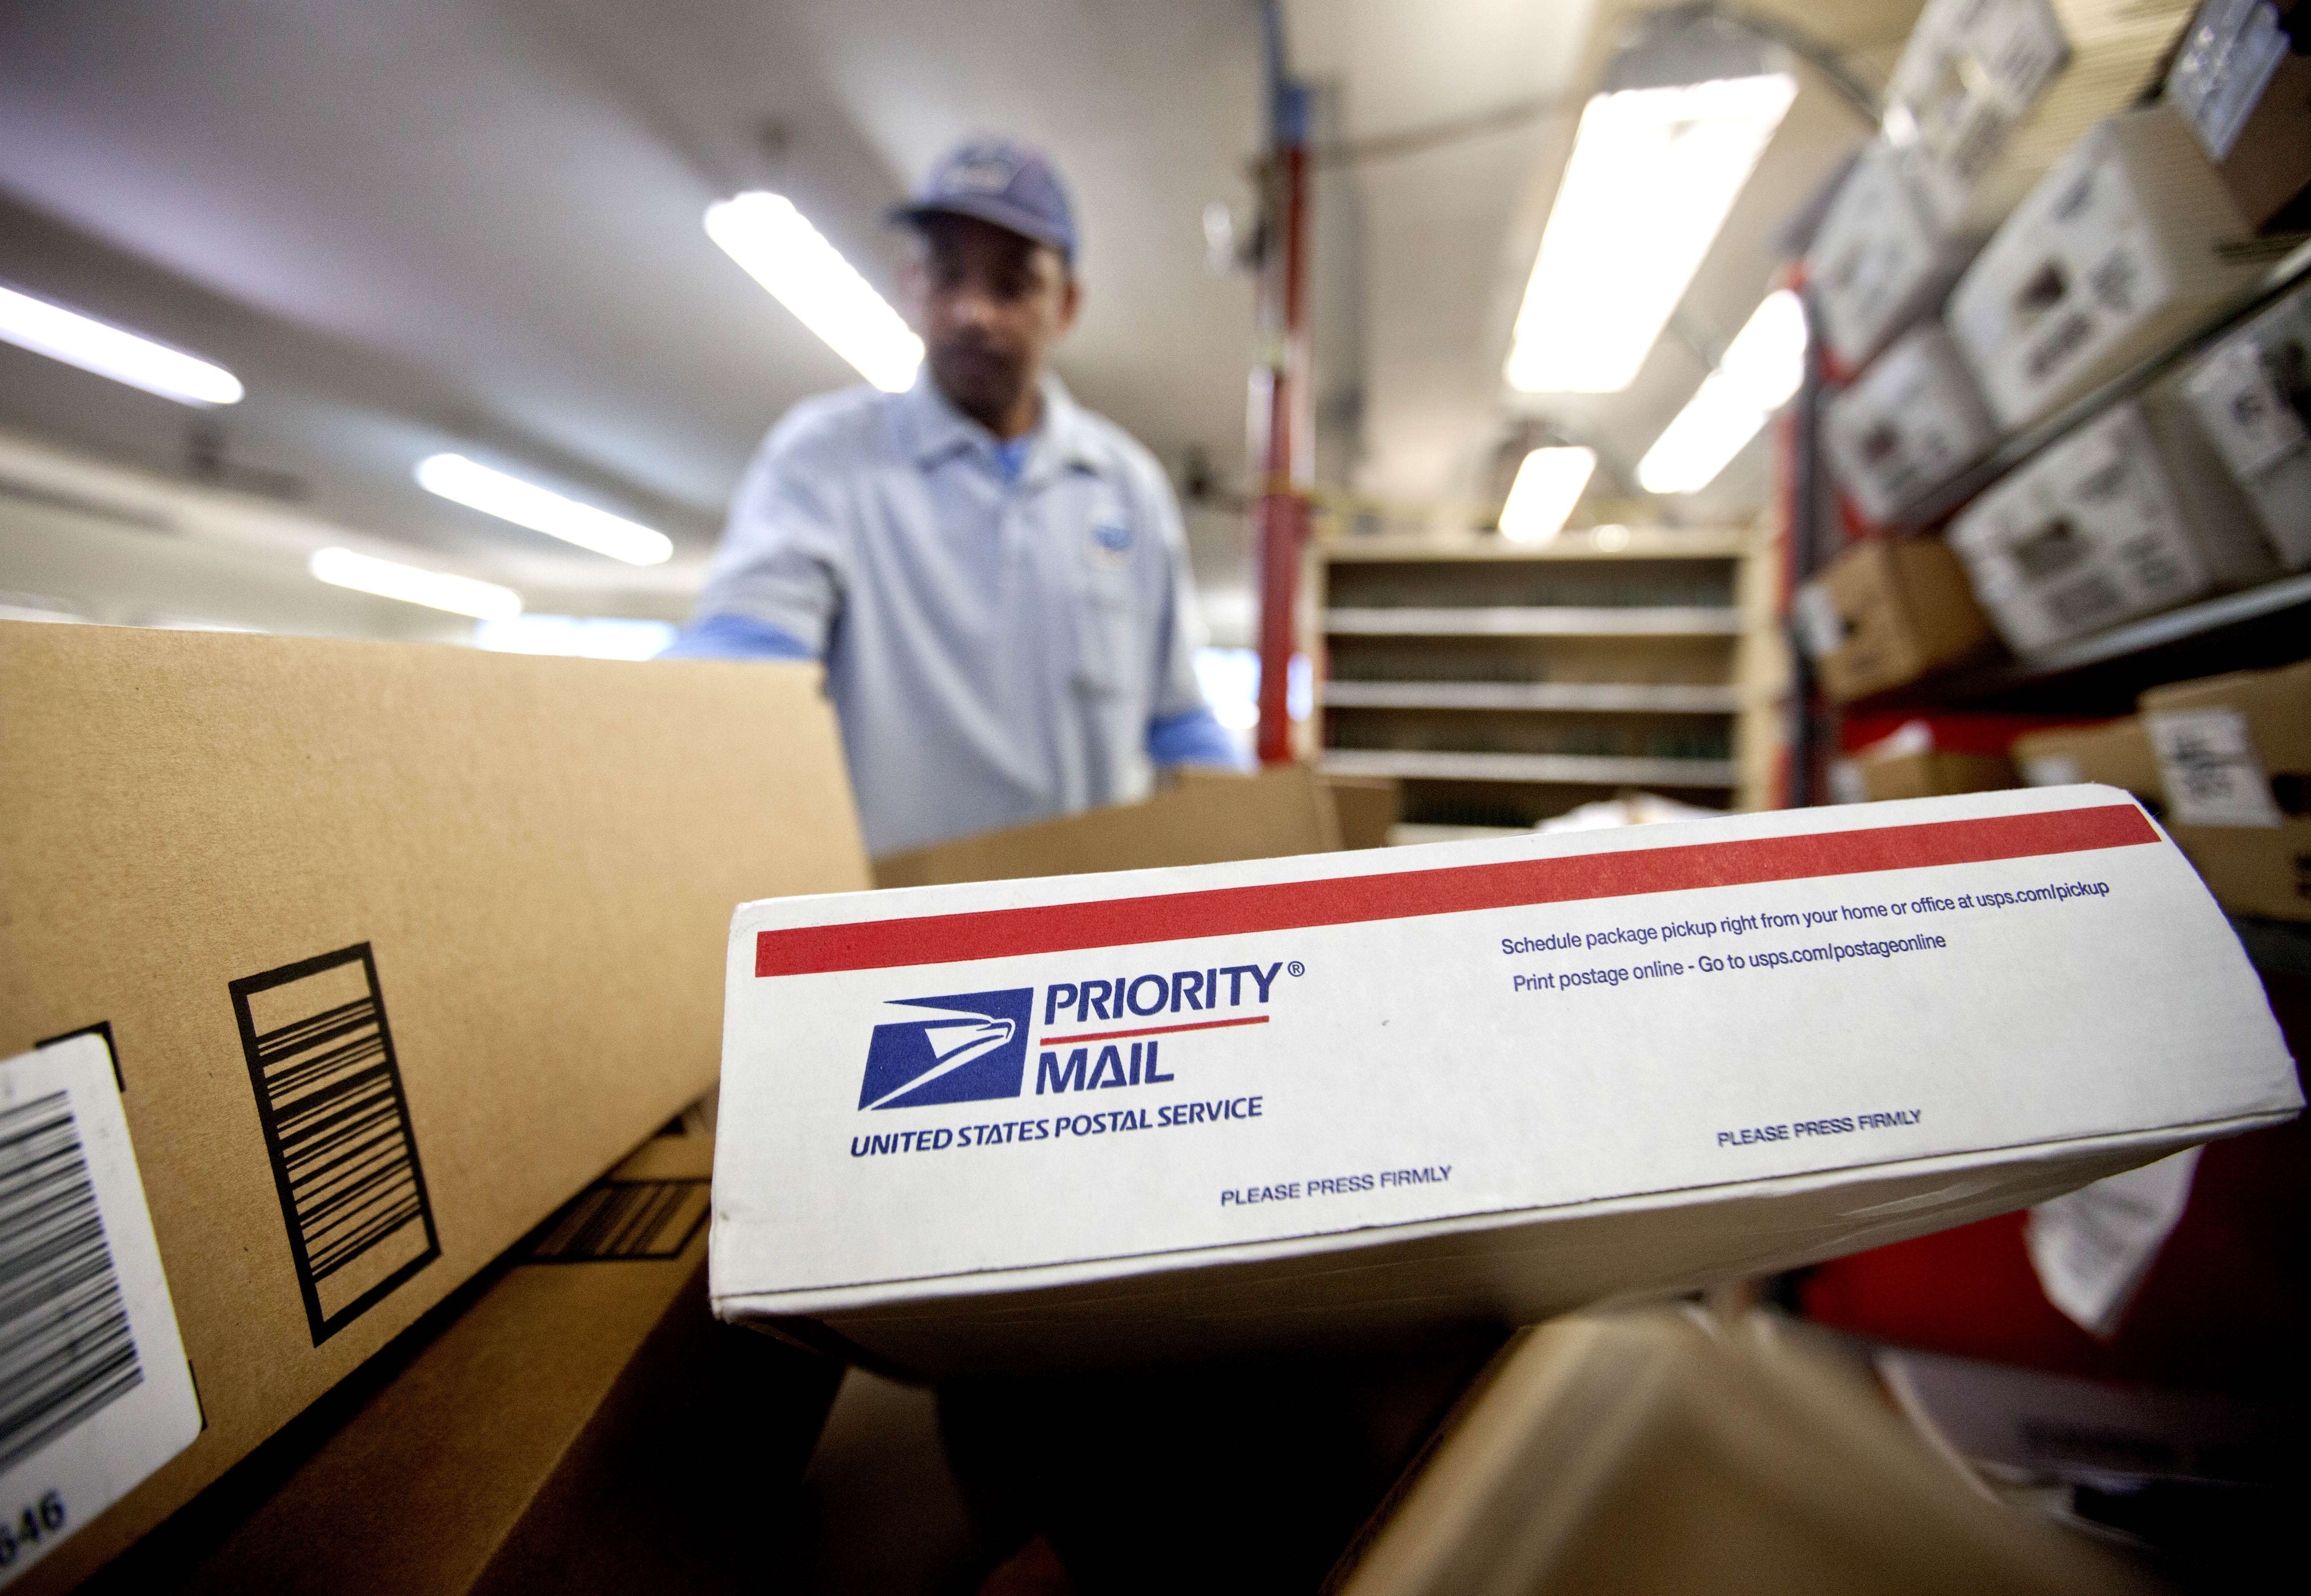 Tips for holiday shipping from the U.S. Postal Service